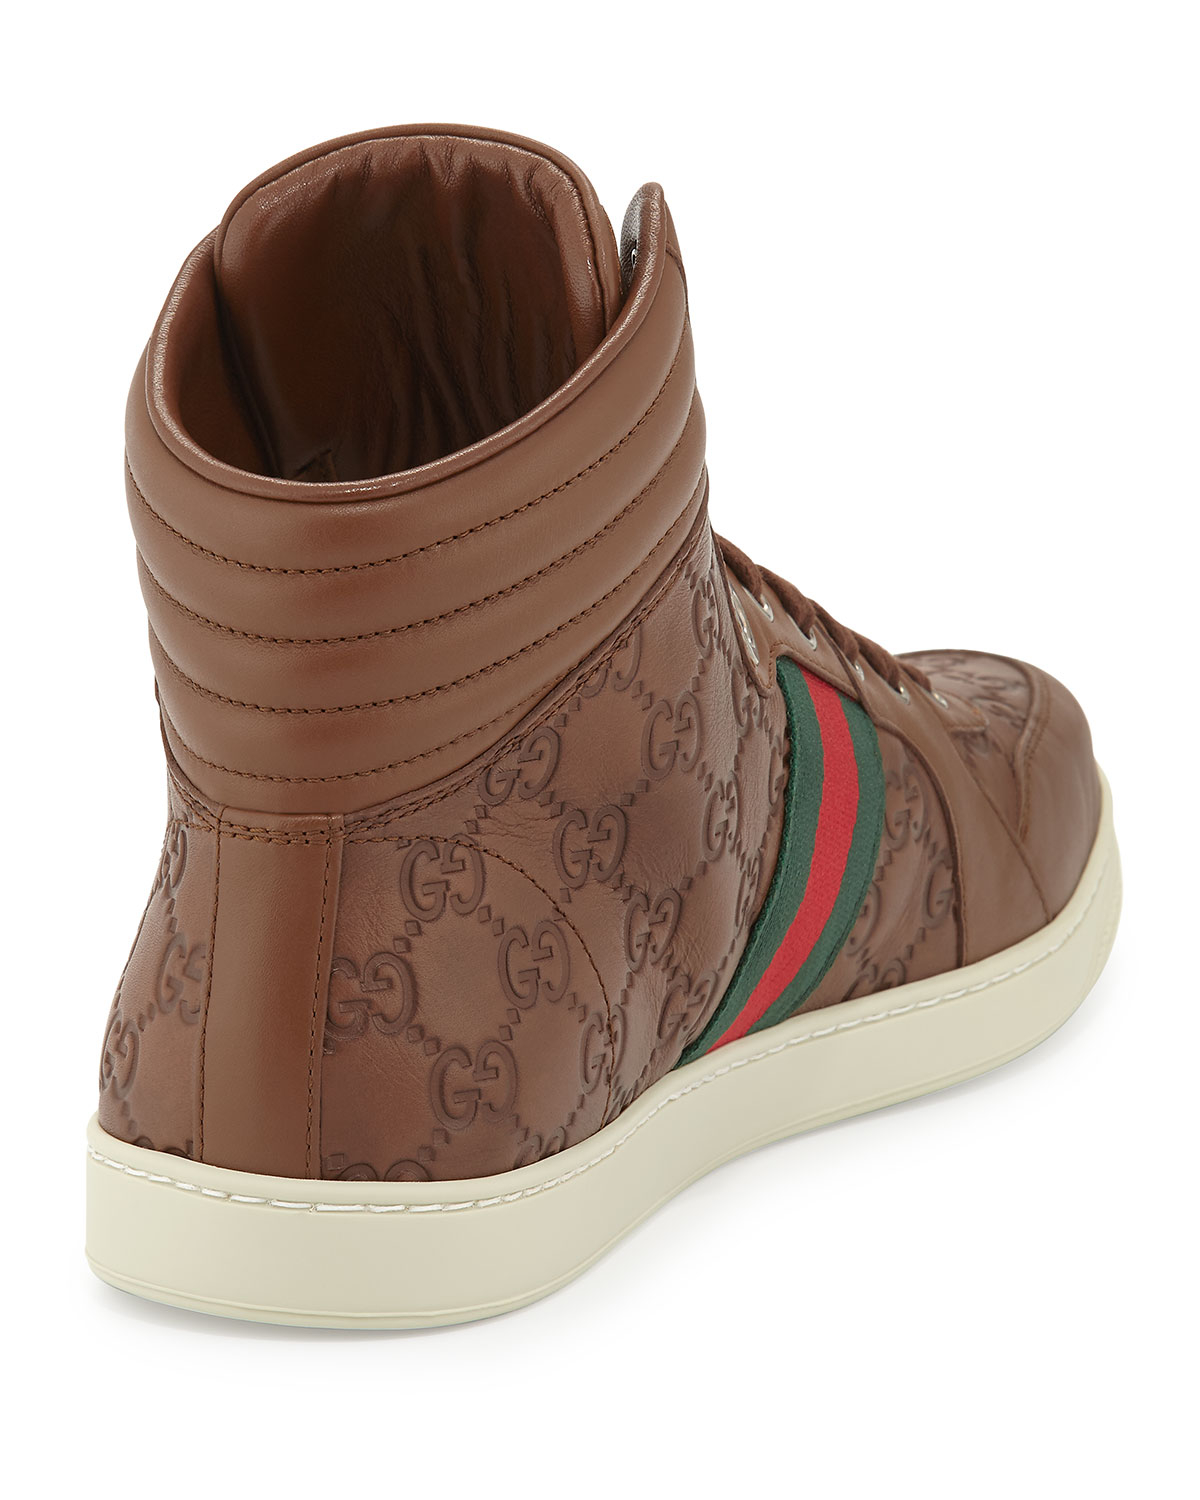 Gucci Leather High-Top Sneakers in Brown for Men